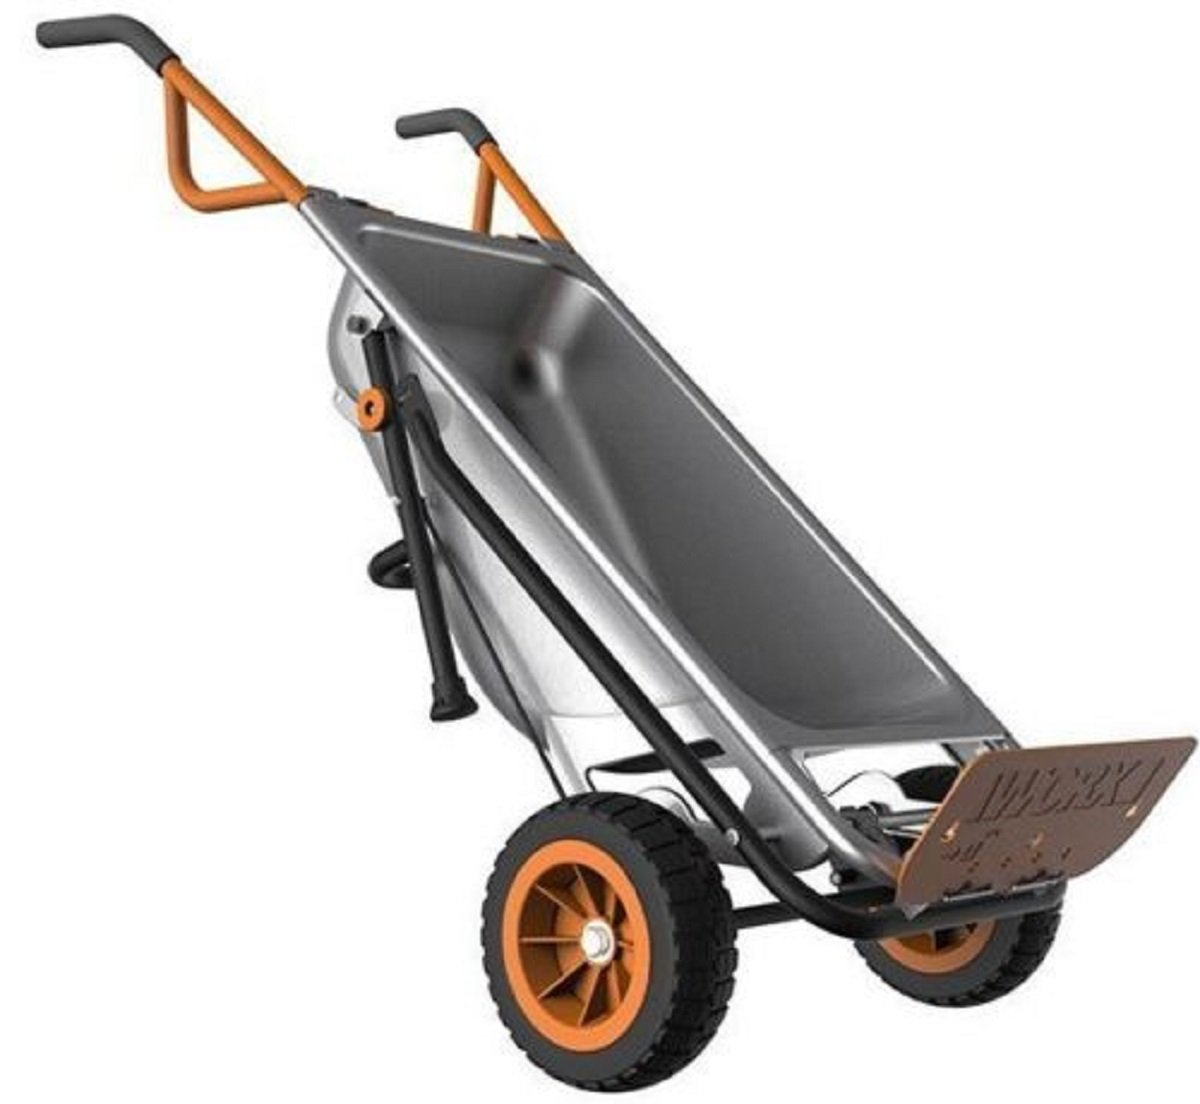 WG050 WORX AeroCart: 8-in-1 Multi-Function WheelBarrow Yard Cart, New, Free Shipping by Worx